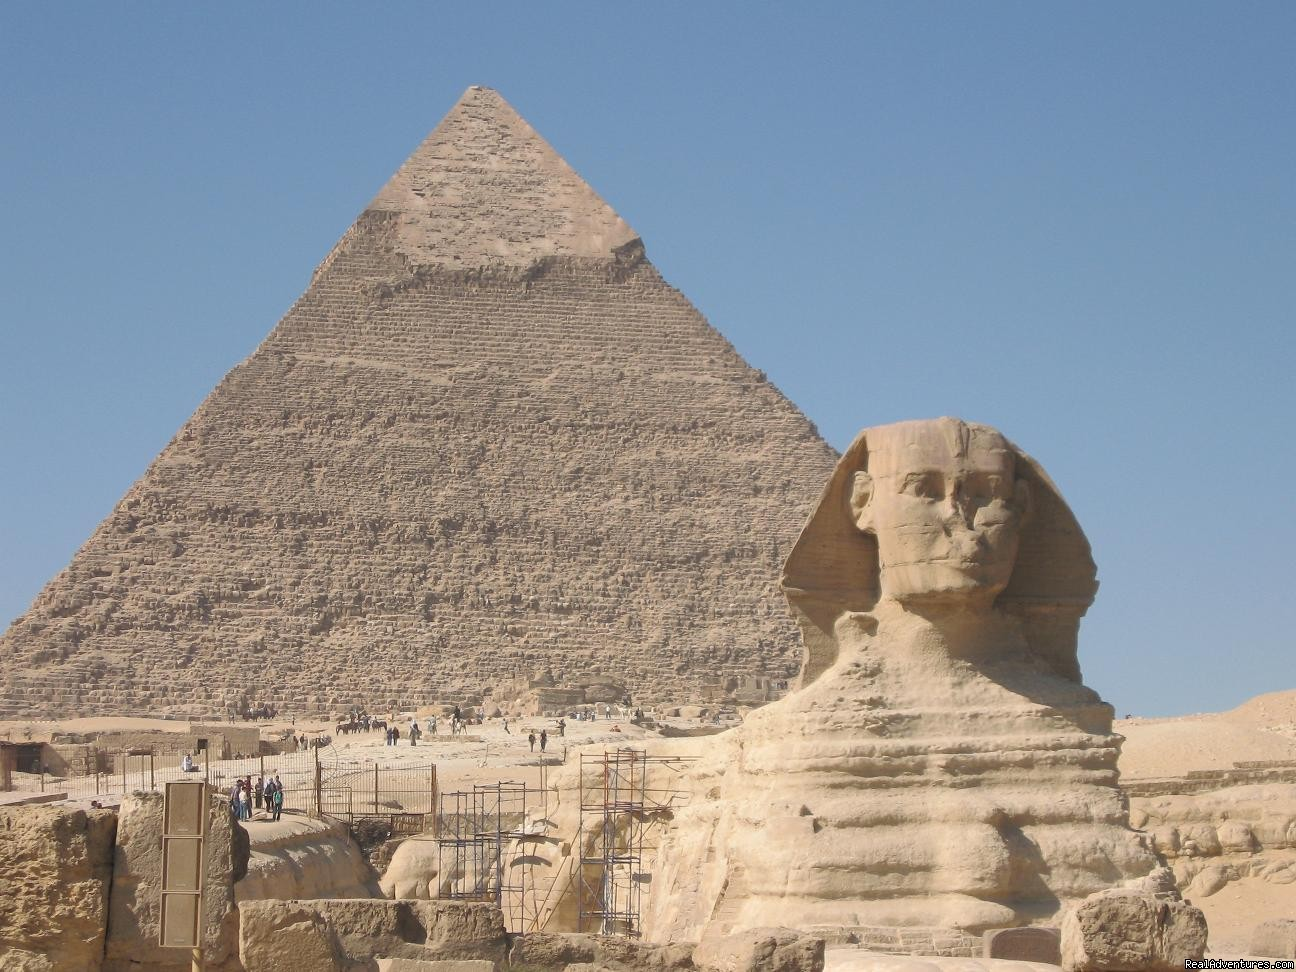 Khafre's Pyramid and the Sphinx at Giza